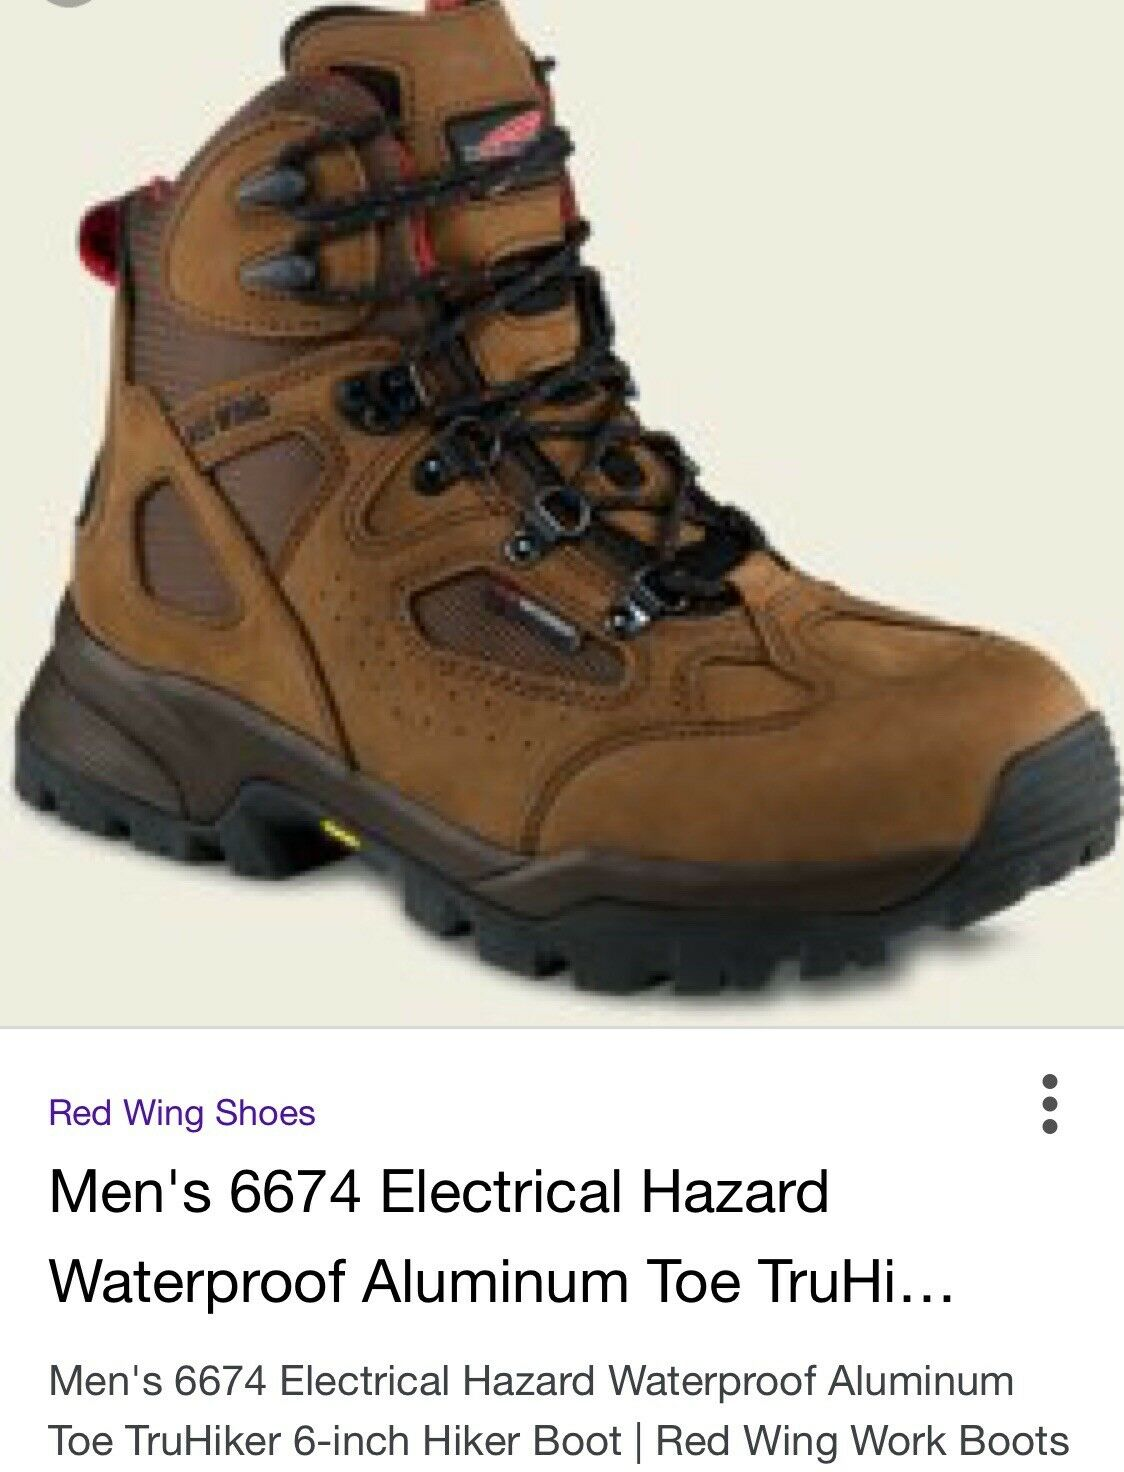 New Red Wings Electrical Hazard Boots Aluminum Toe - size 8' (mens)